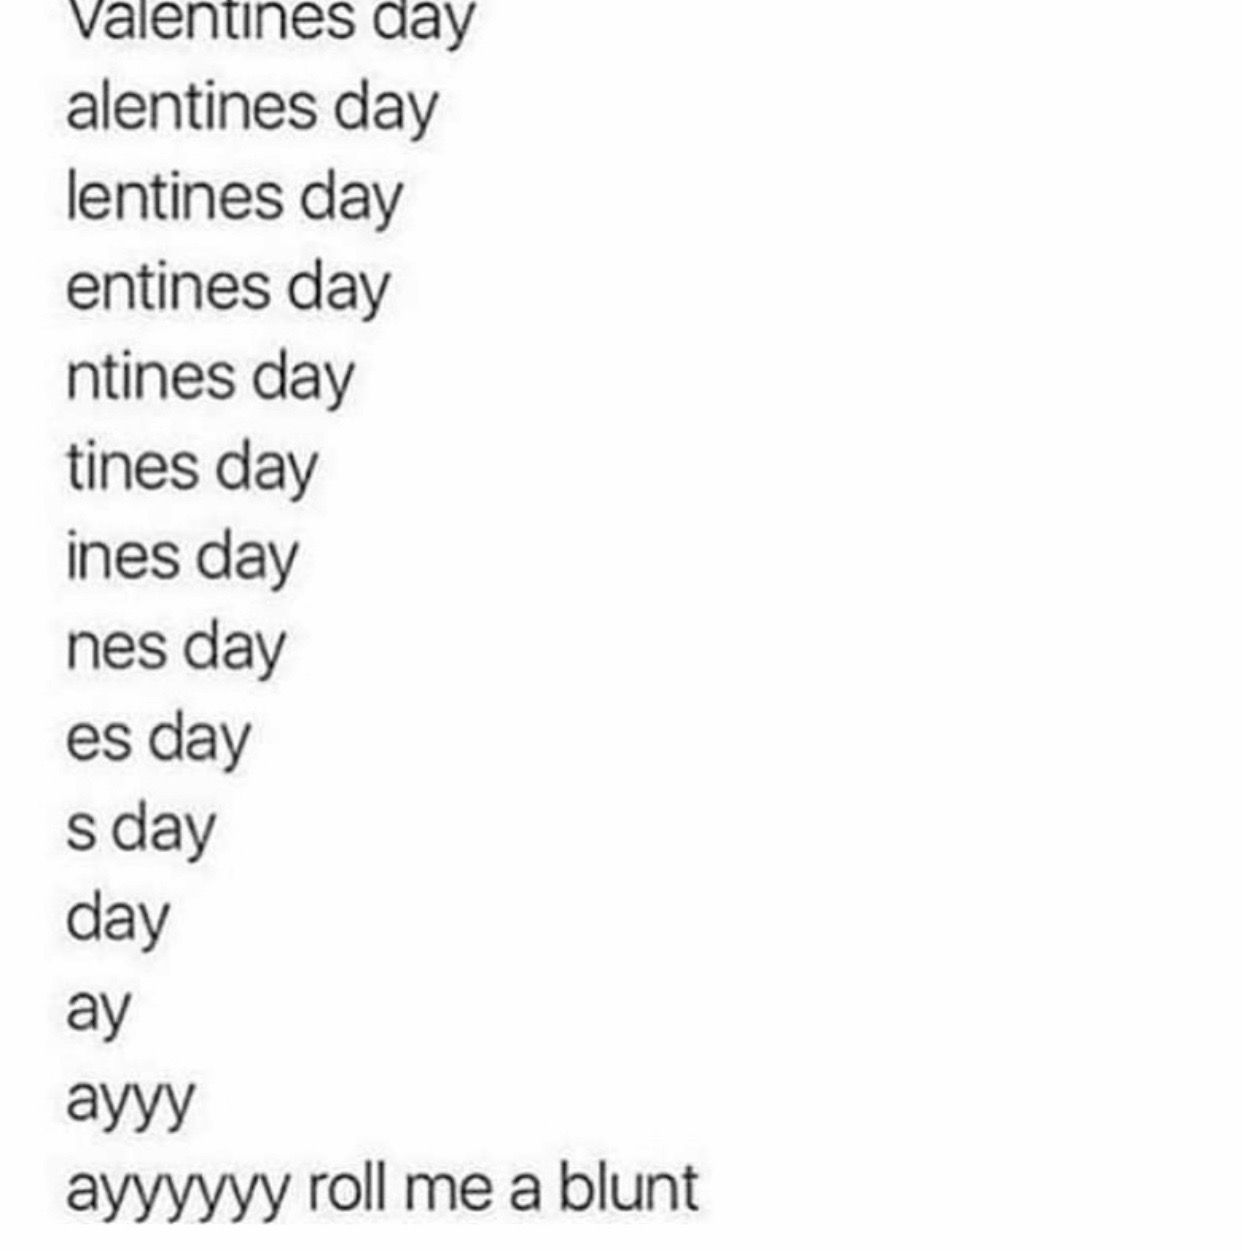 Pin By Jennifer Diaz On Vday Drug Memes Singles Awareness Day Day And Mood